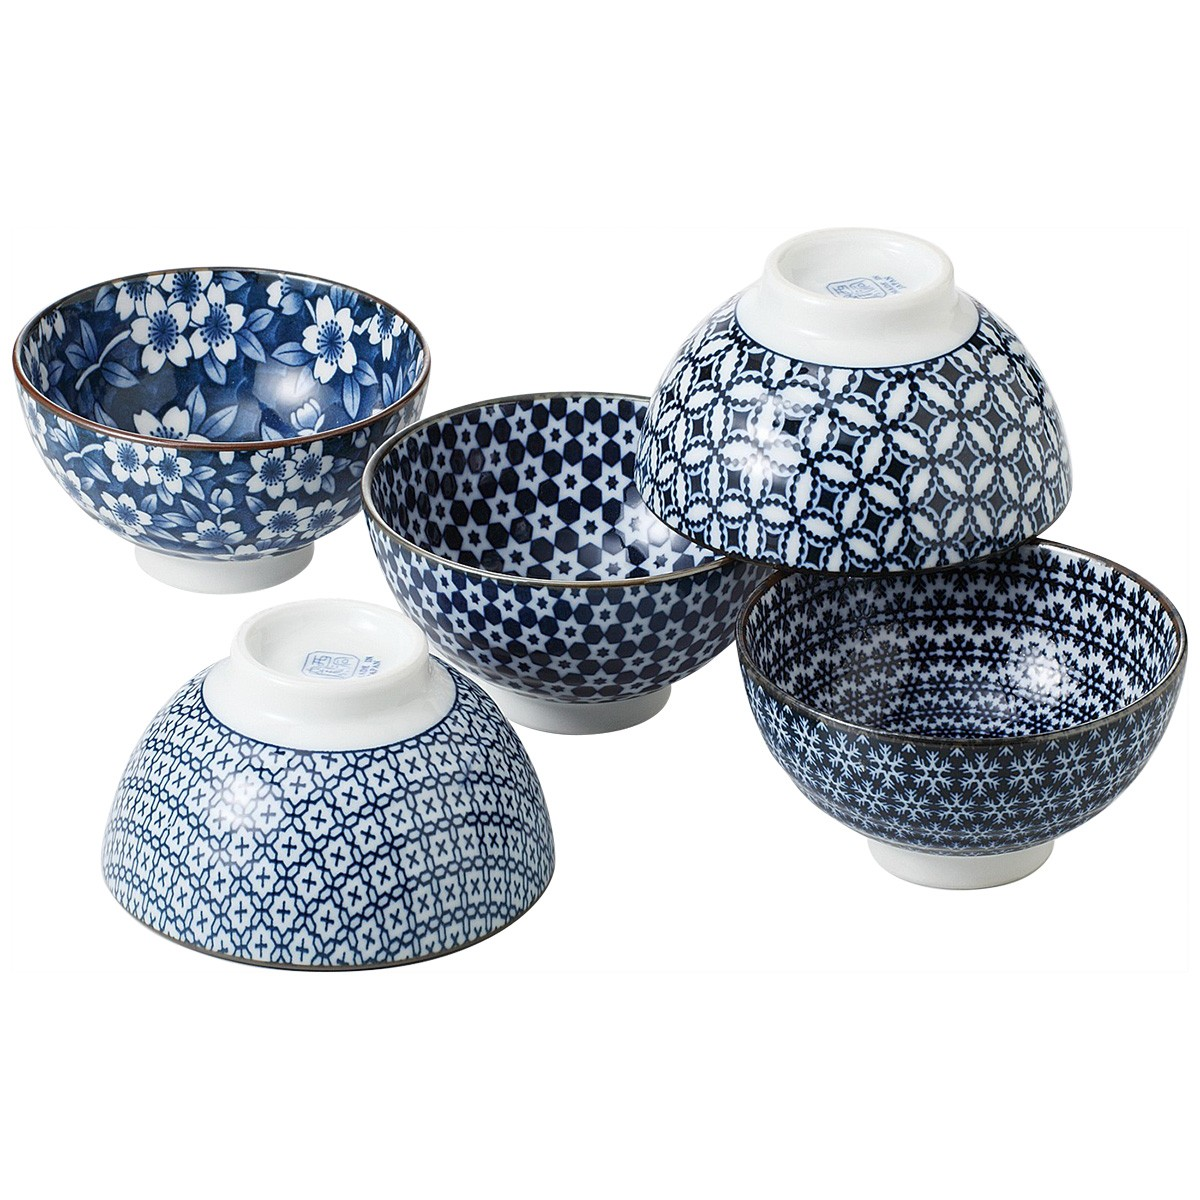 Nami 5 Piece Porcelain Rice Bowl Set